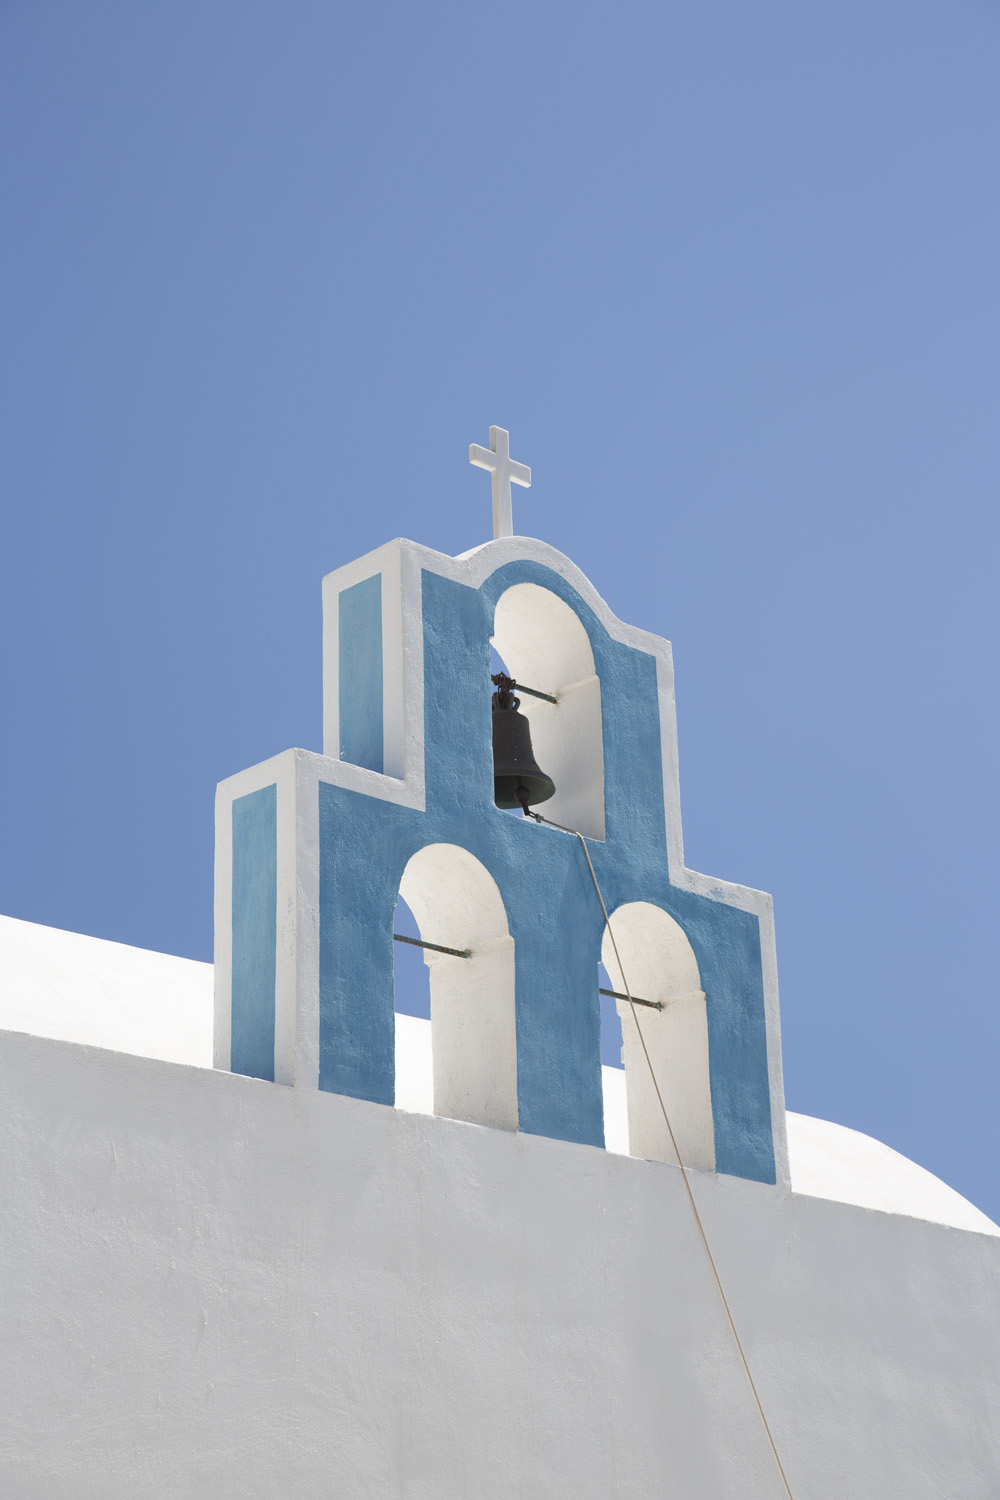 FOUREYES in Santorini, Greece.